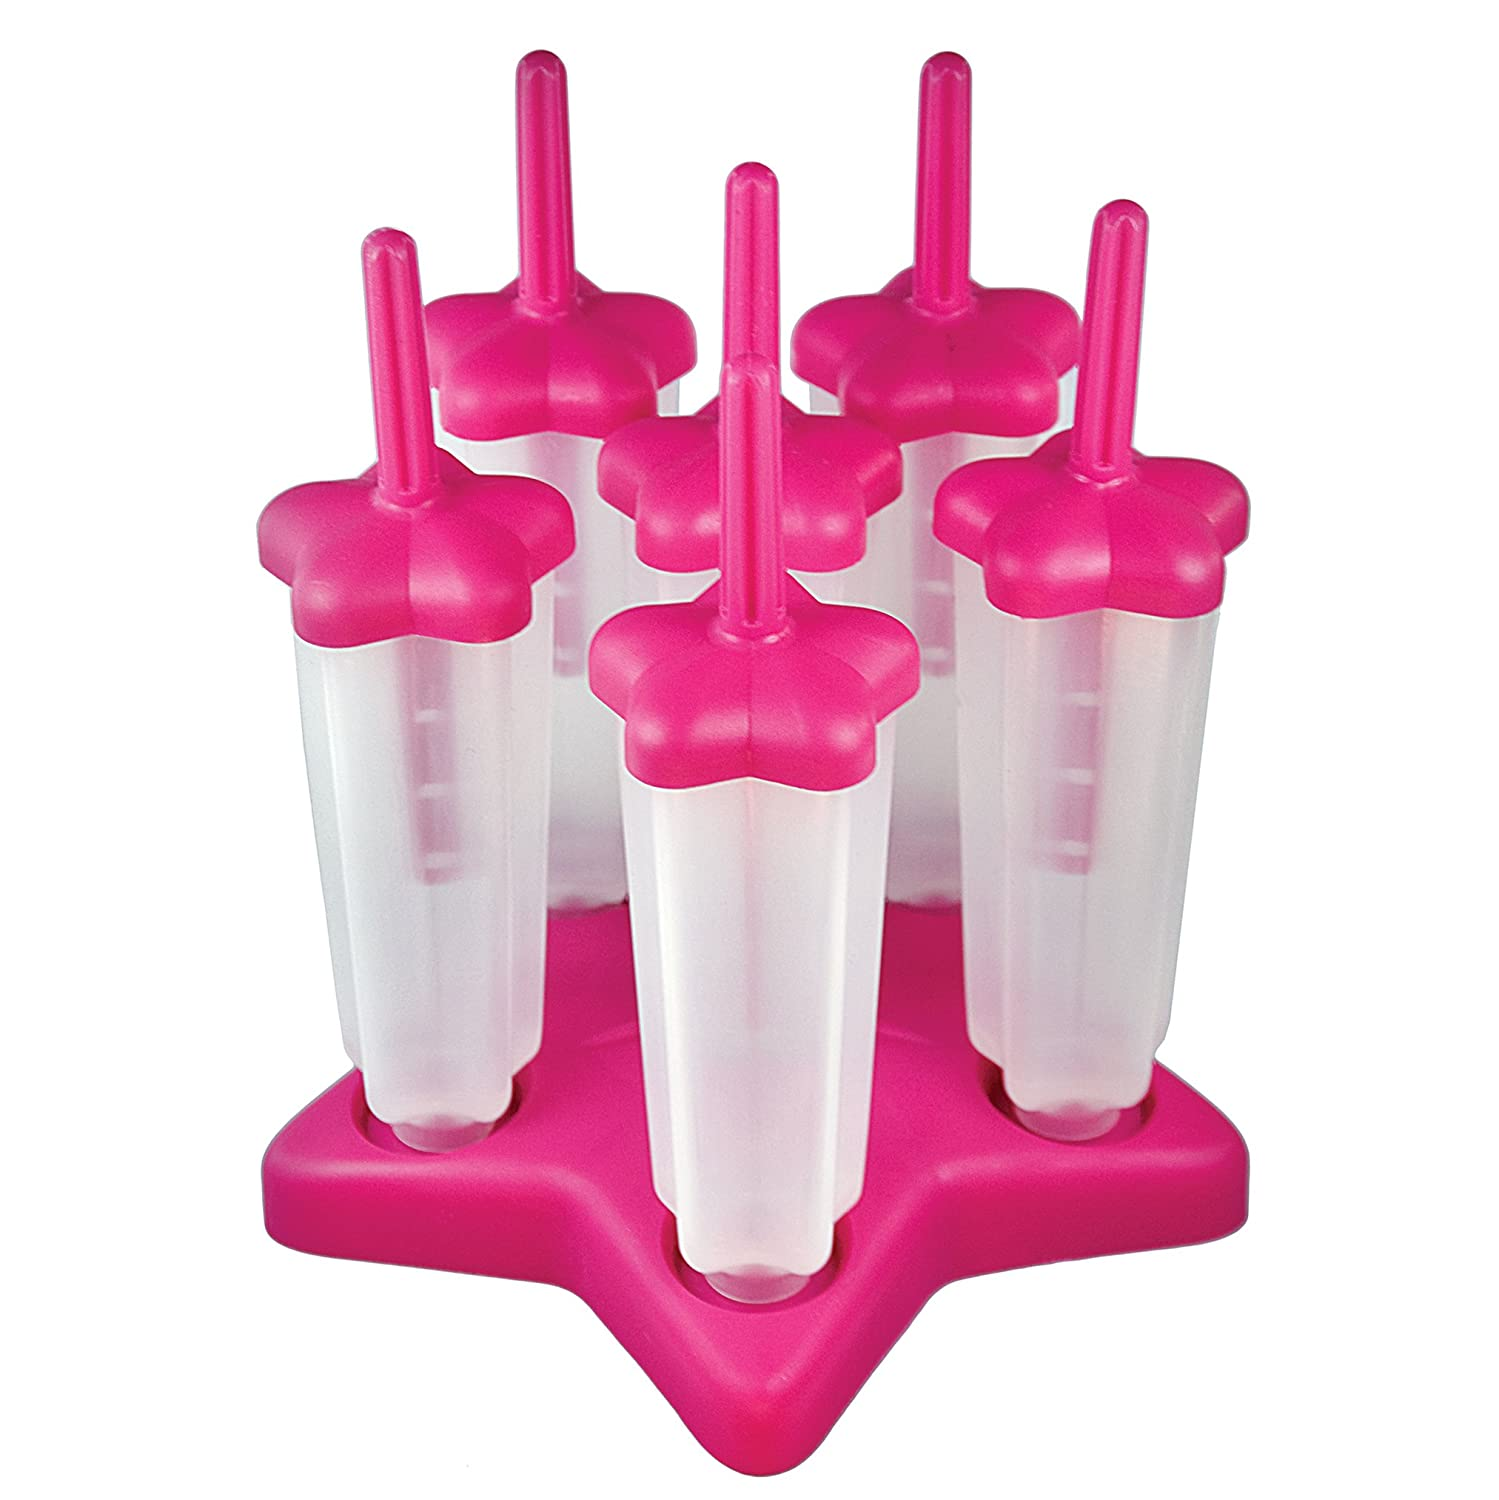 Amazon.com: Tovolo Star Pop Molds, Pink - Set of 6: Ice Pop Molds ...